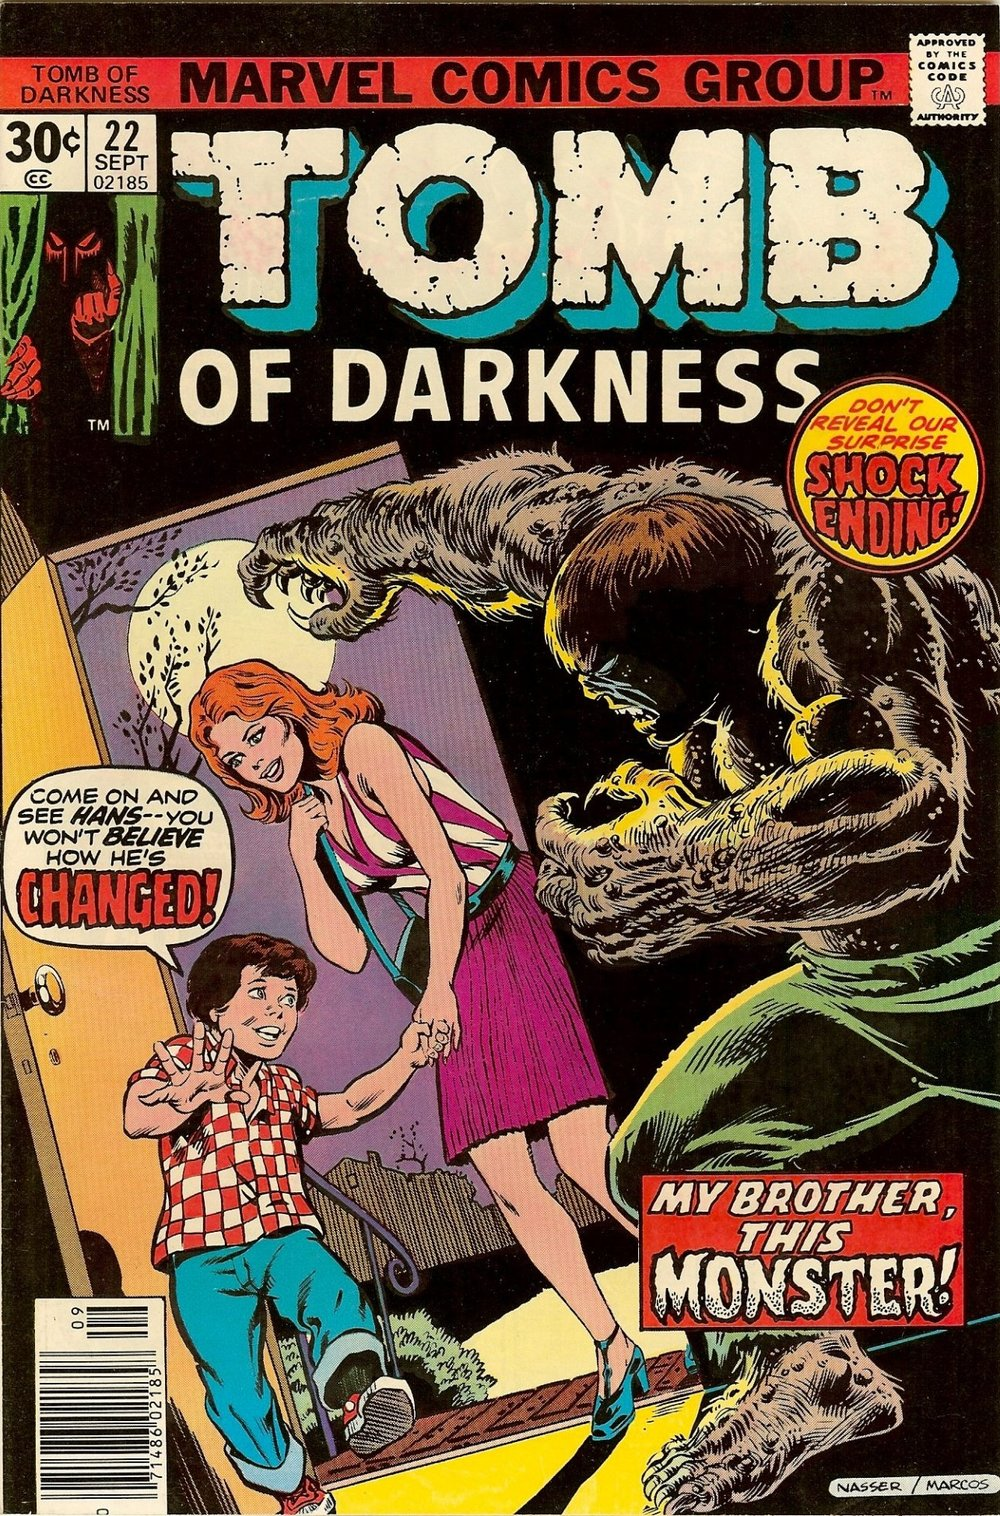 Tomb of Darkness (1974) #22, cover penciled by Mike Nasser & inked by Pablo Marcos.